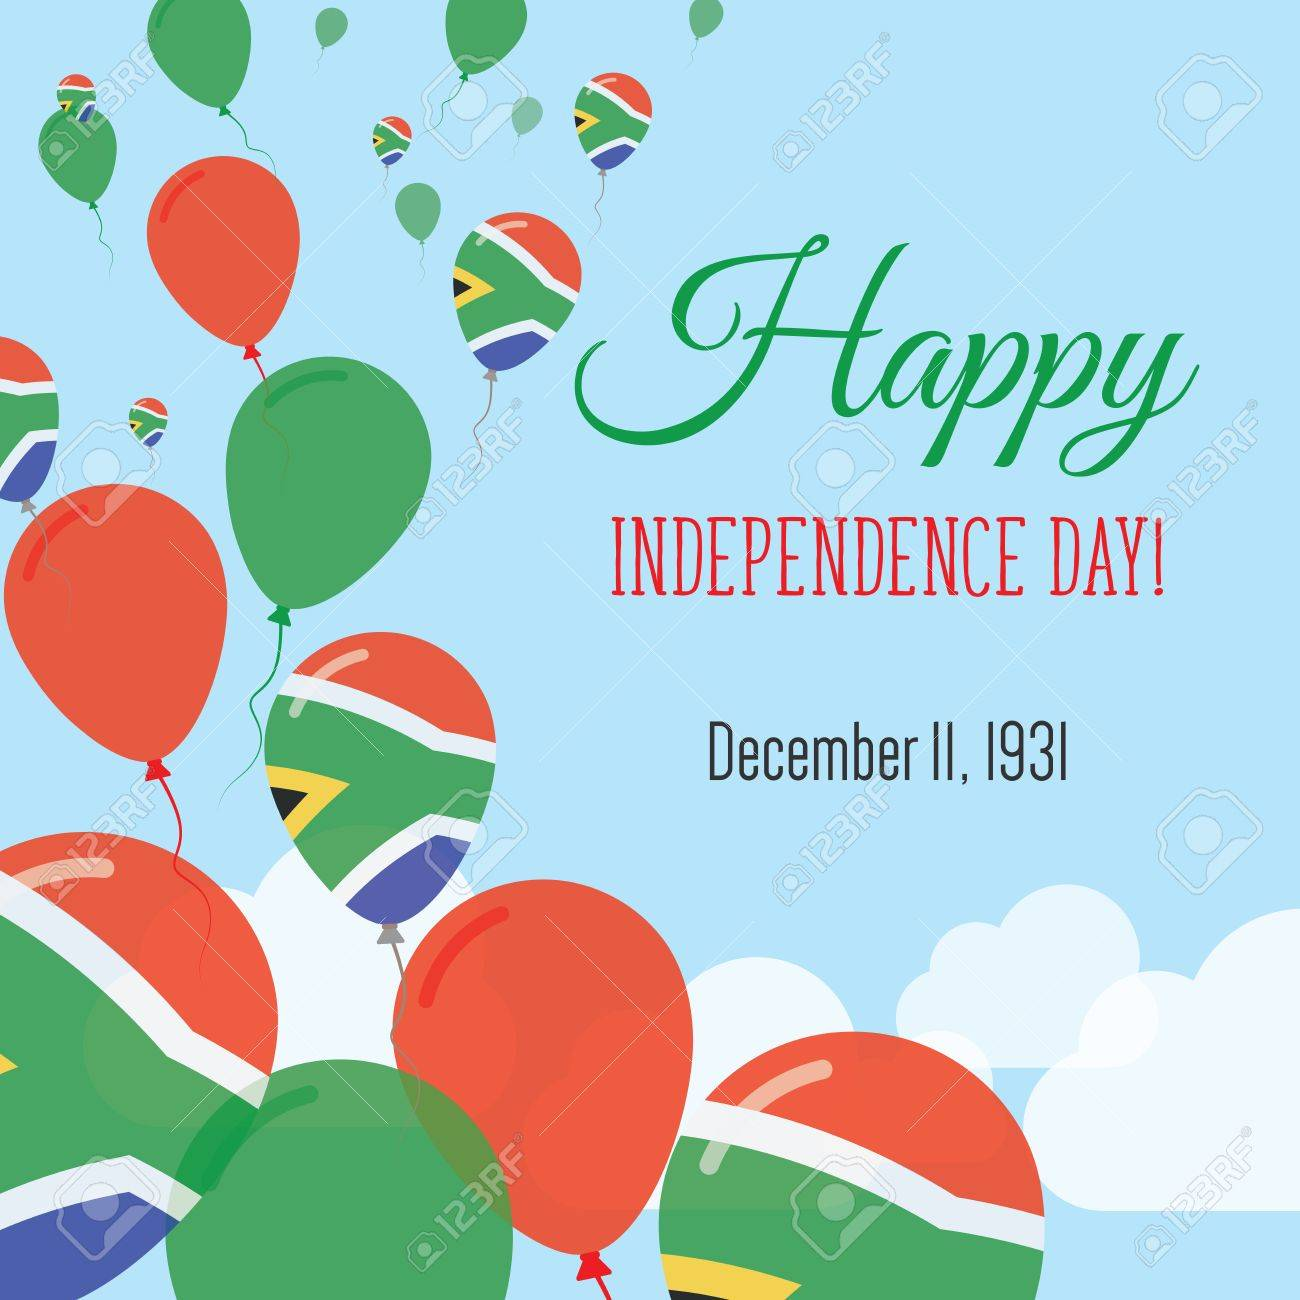 Independence day flat greeting card south africa independence independence day flat greeting card south africa independence day south african flag balloons patriotic m4hsunfo